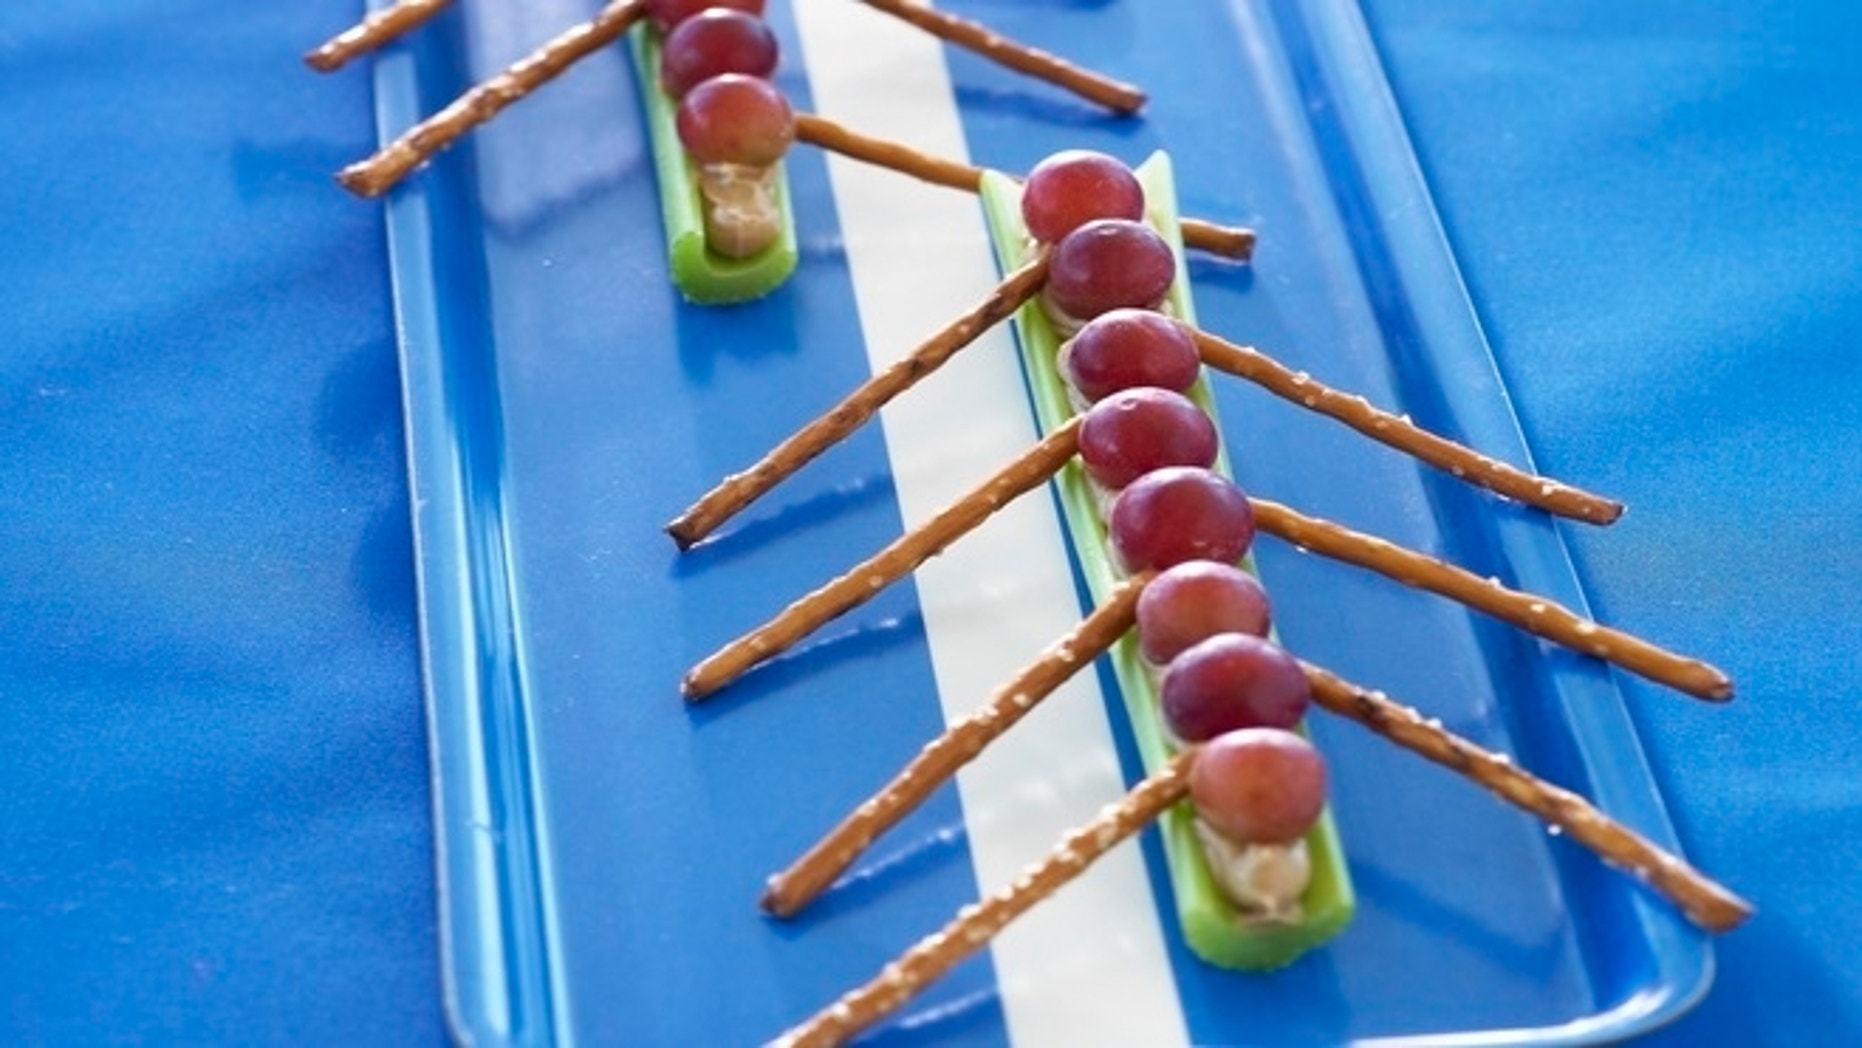 Grapes in a Canoe is a classic and easy-to-make snack.